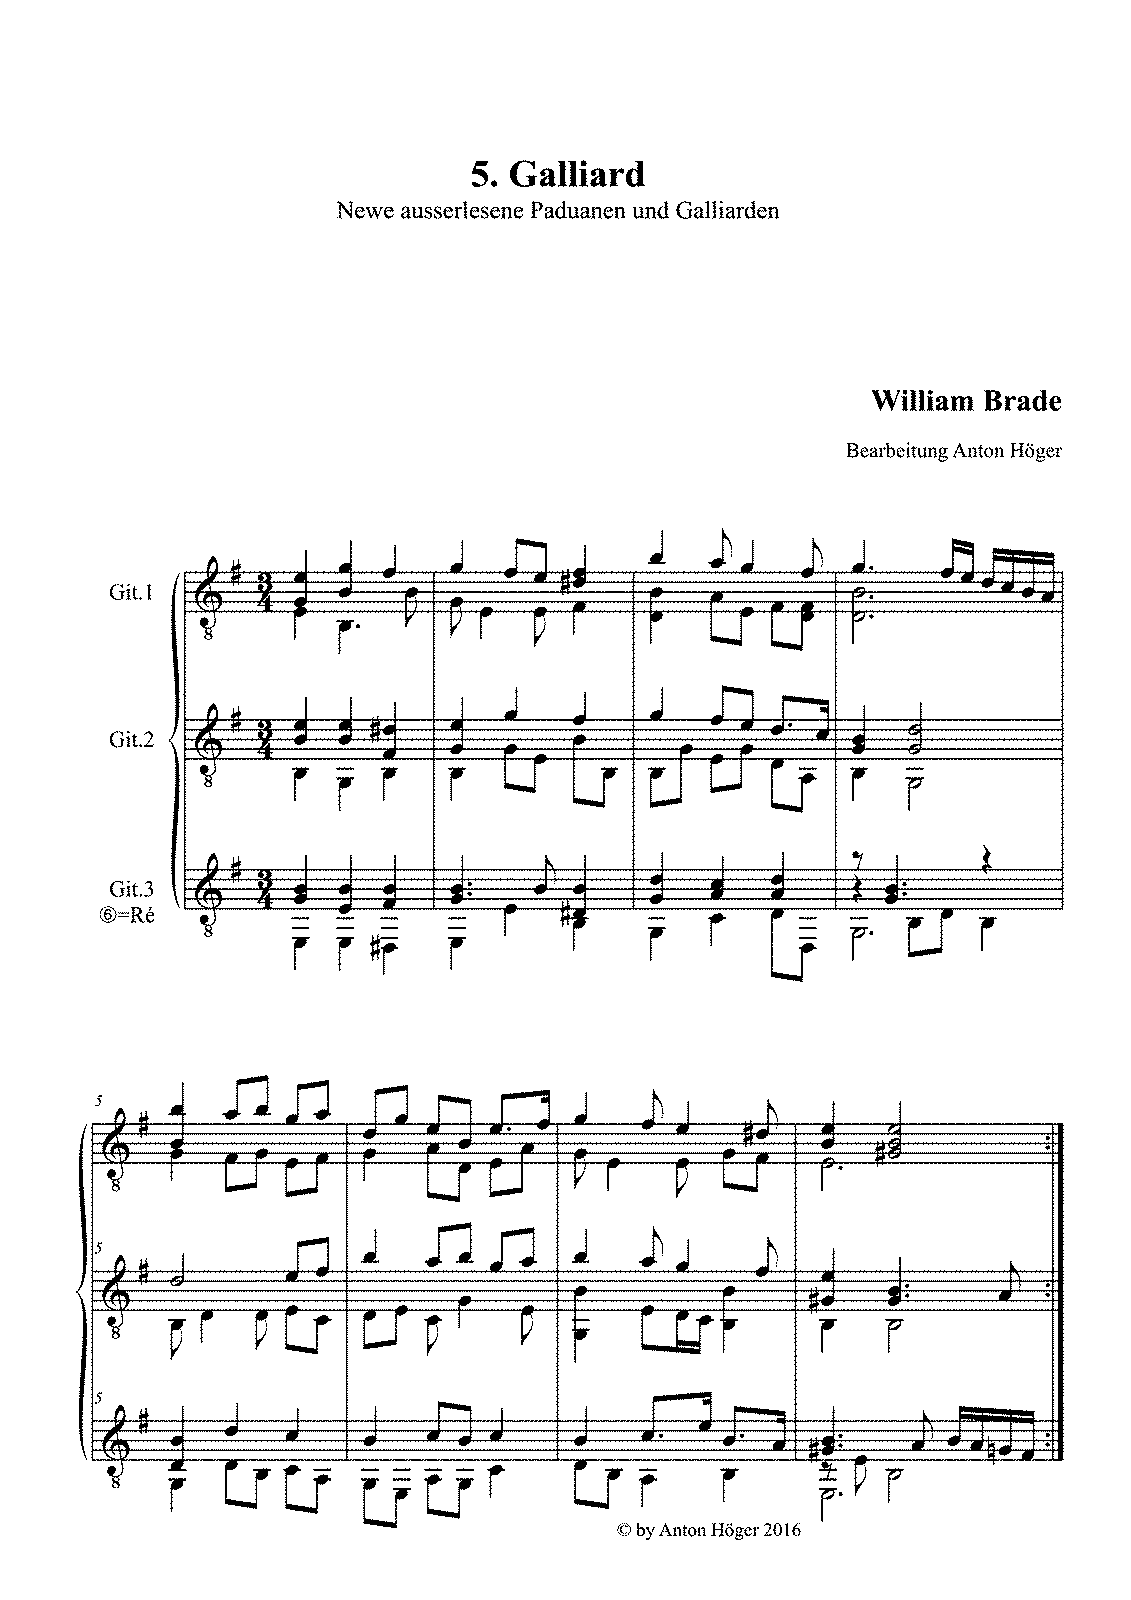 PMLP709192-Brade, William - 5. Galliard (1614).pdf